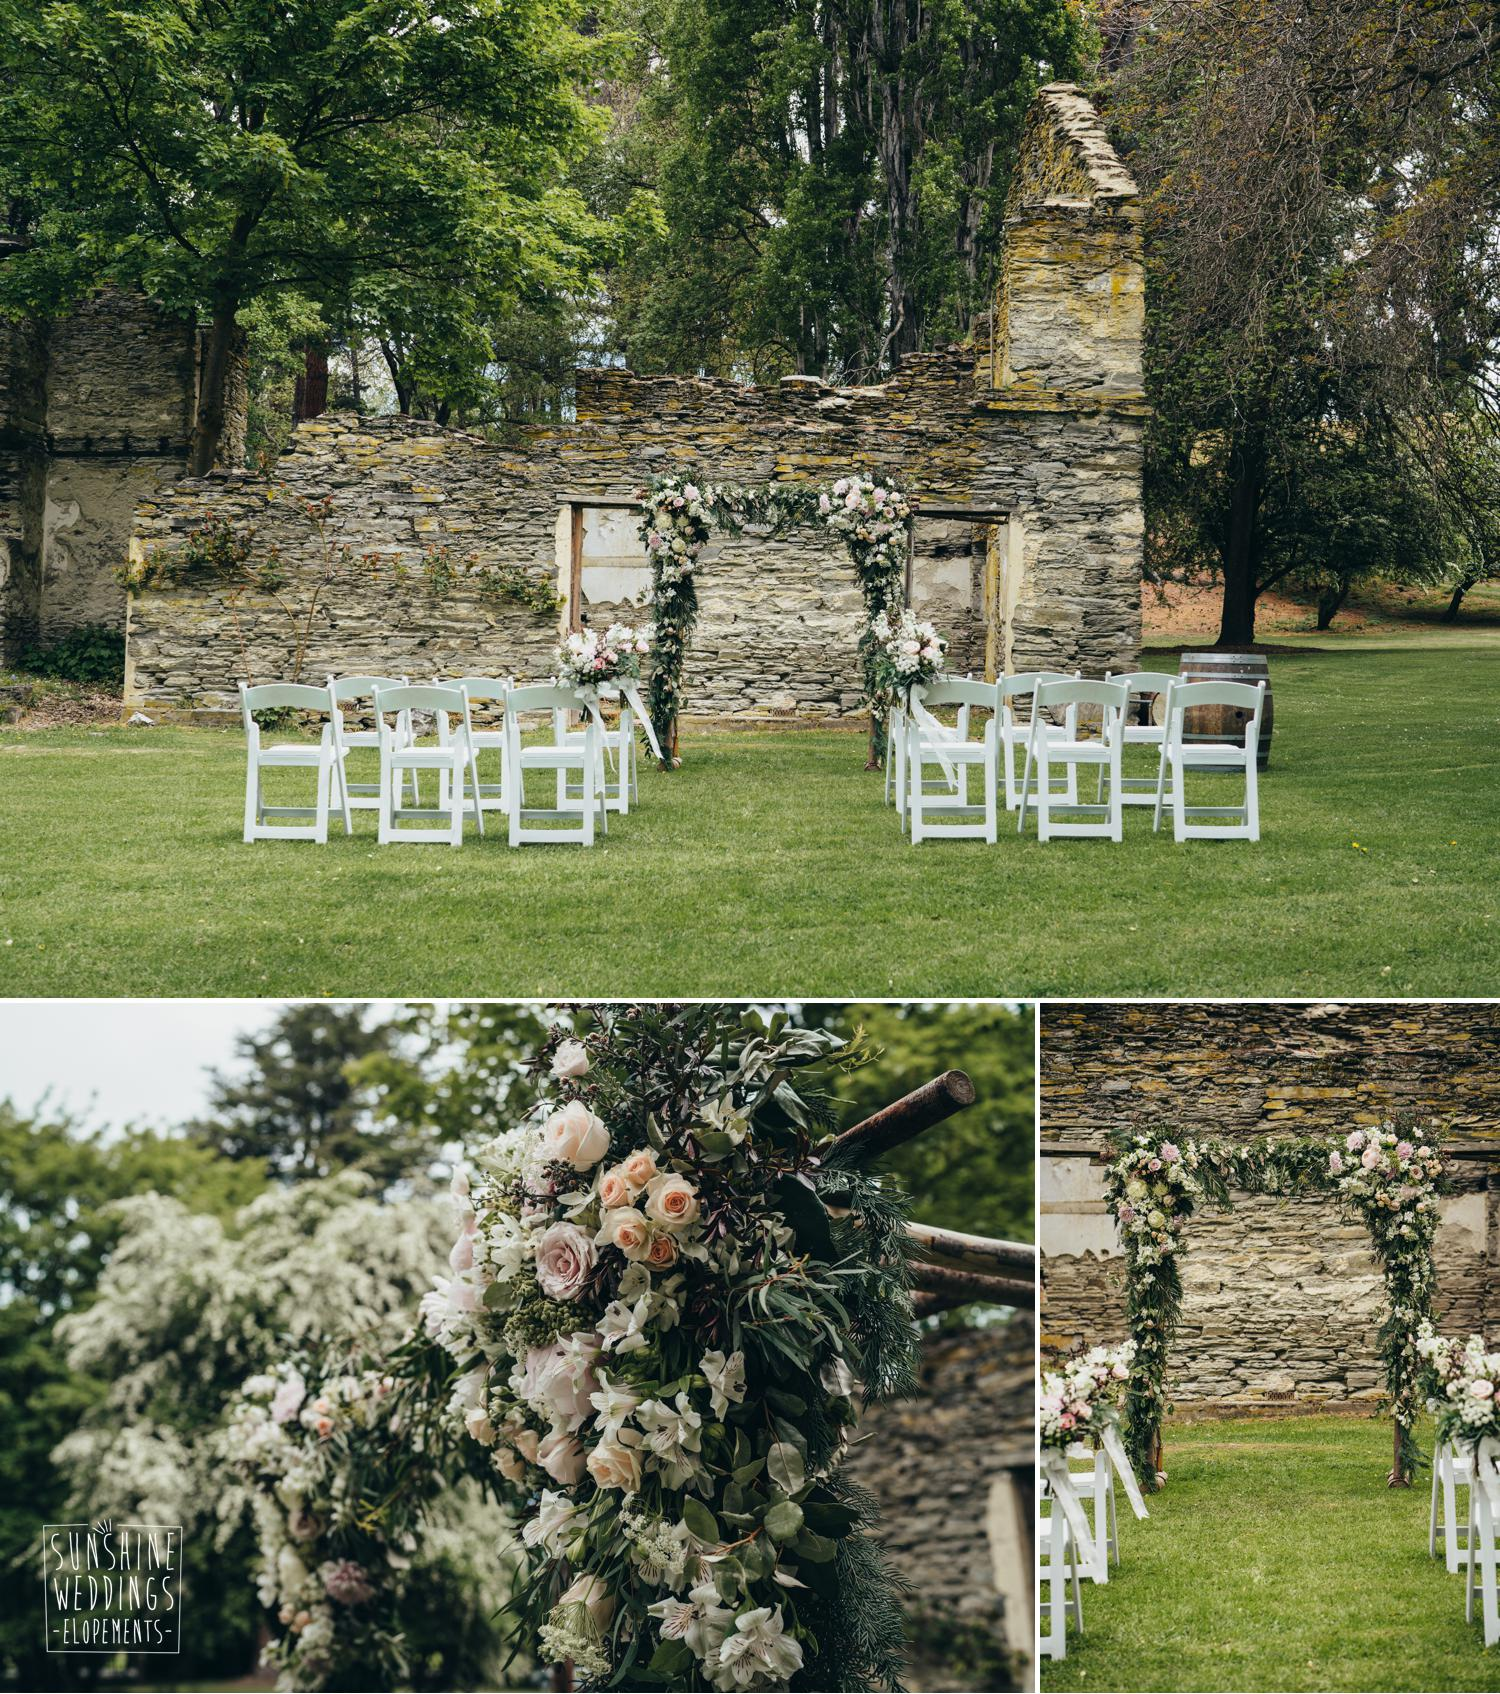 Thurlby Domain wedding